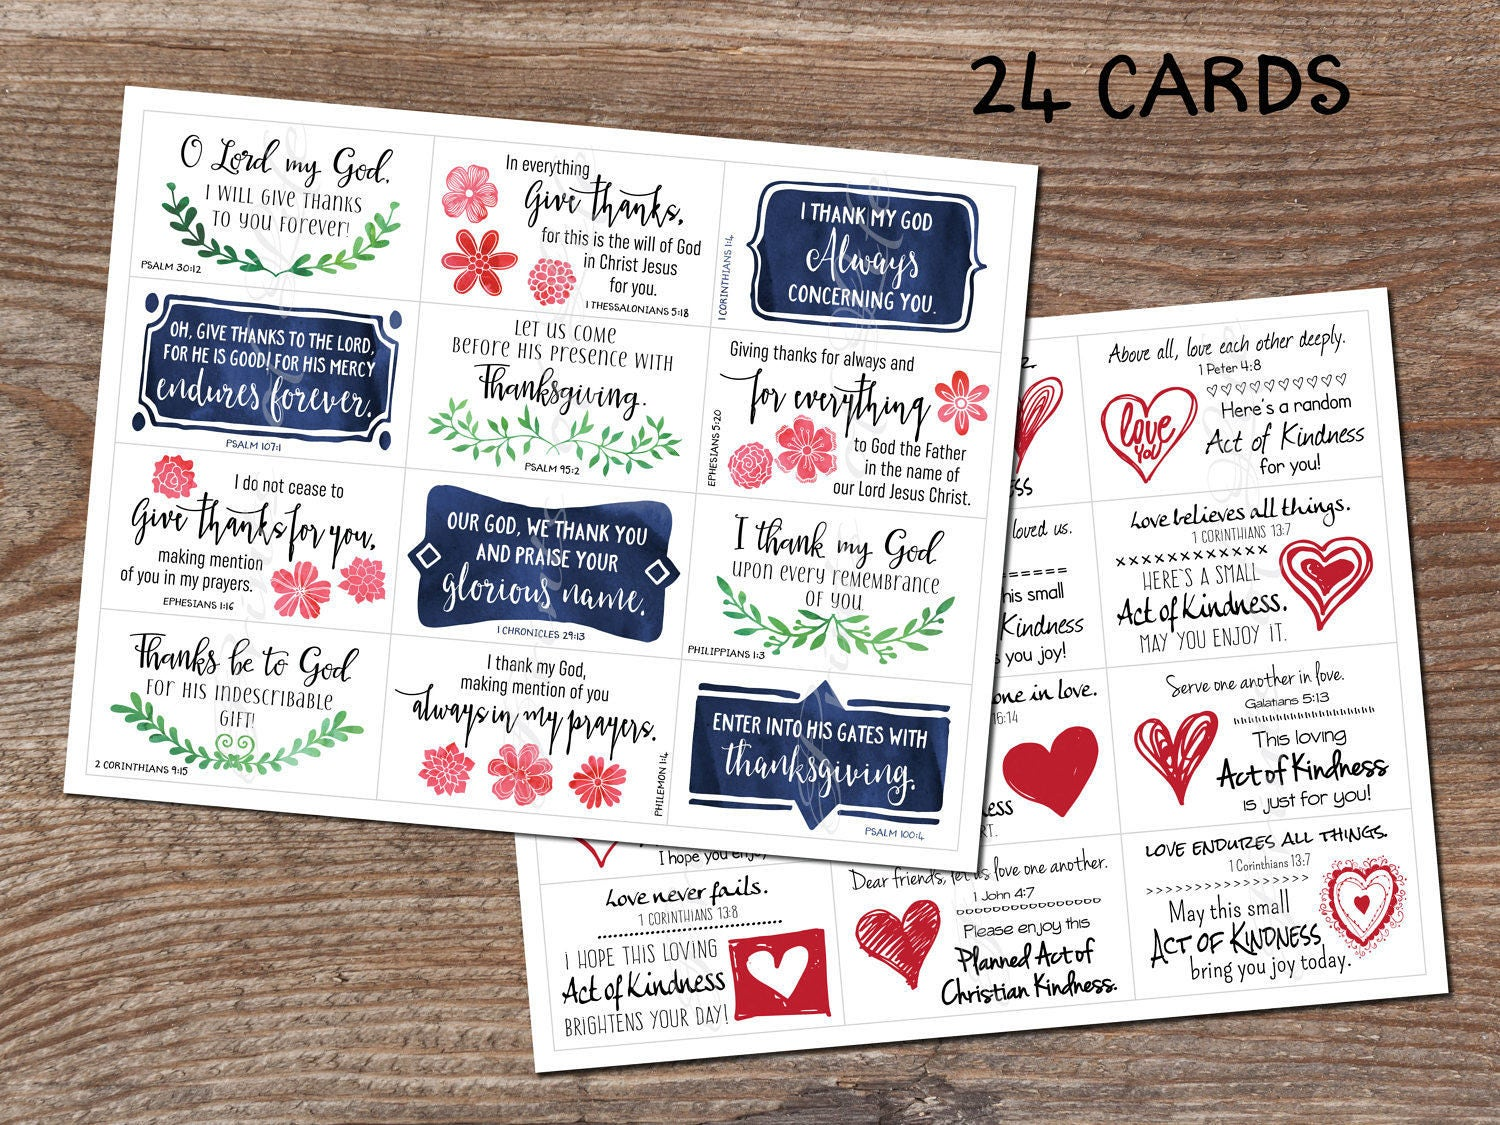 Free business cards religious image collections card design and free printable religious business cards choice image card design free business cards religious choice image card reheart Gallery